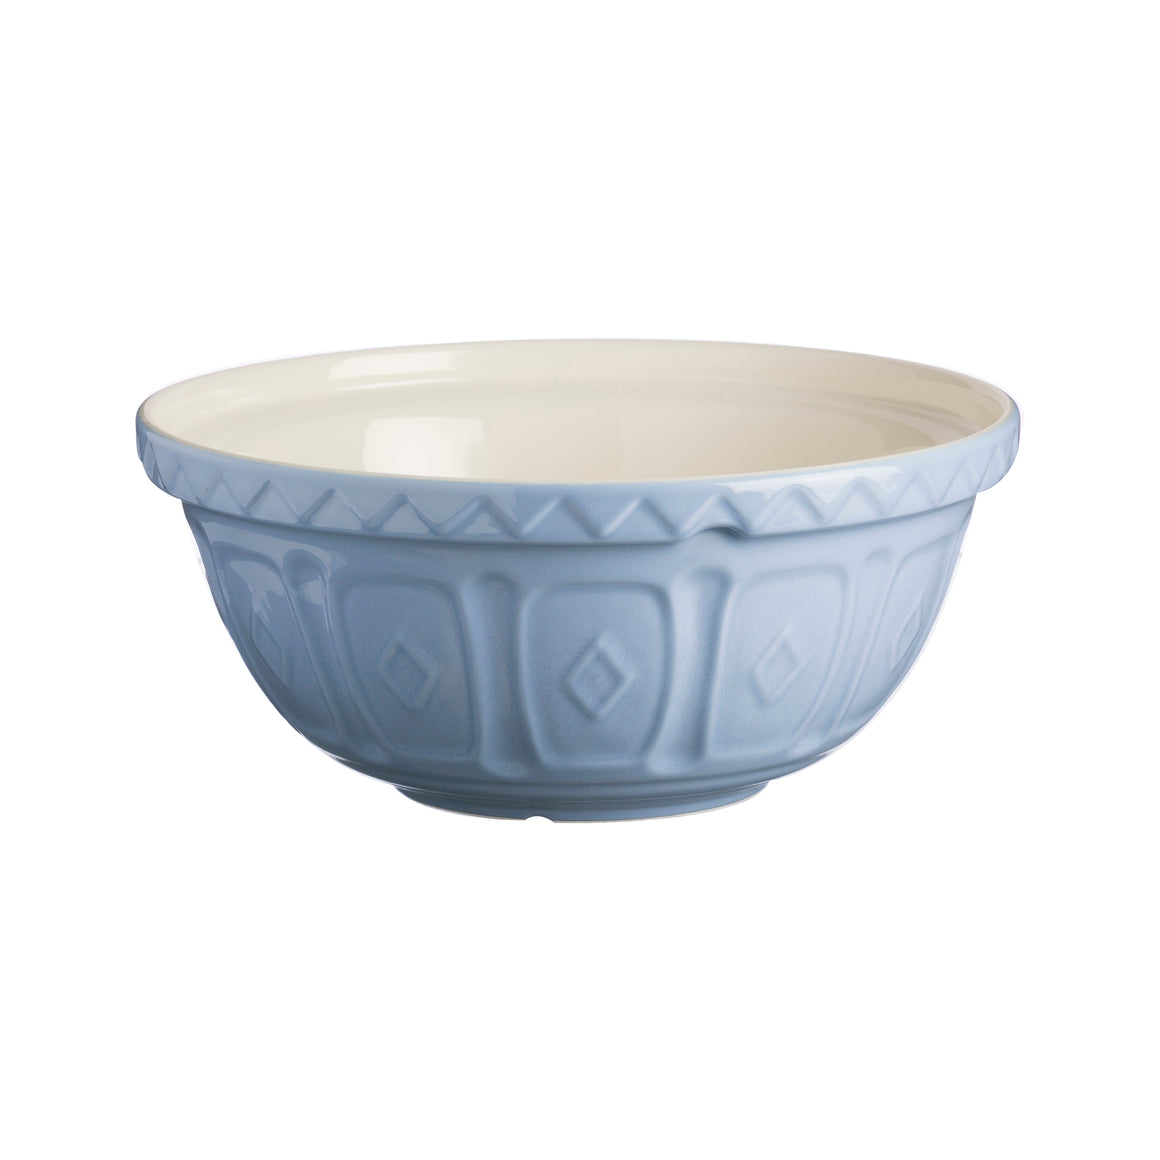 Colour Mix S24 Lilac Mixing Bowl 24cm - Mason Cash - 2001.956